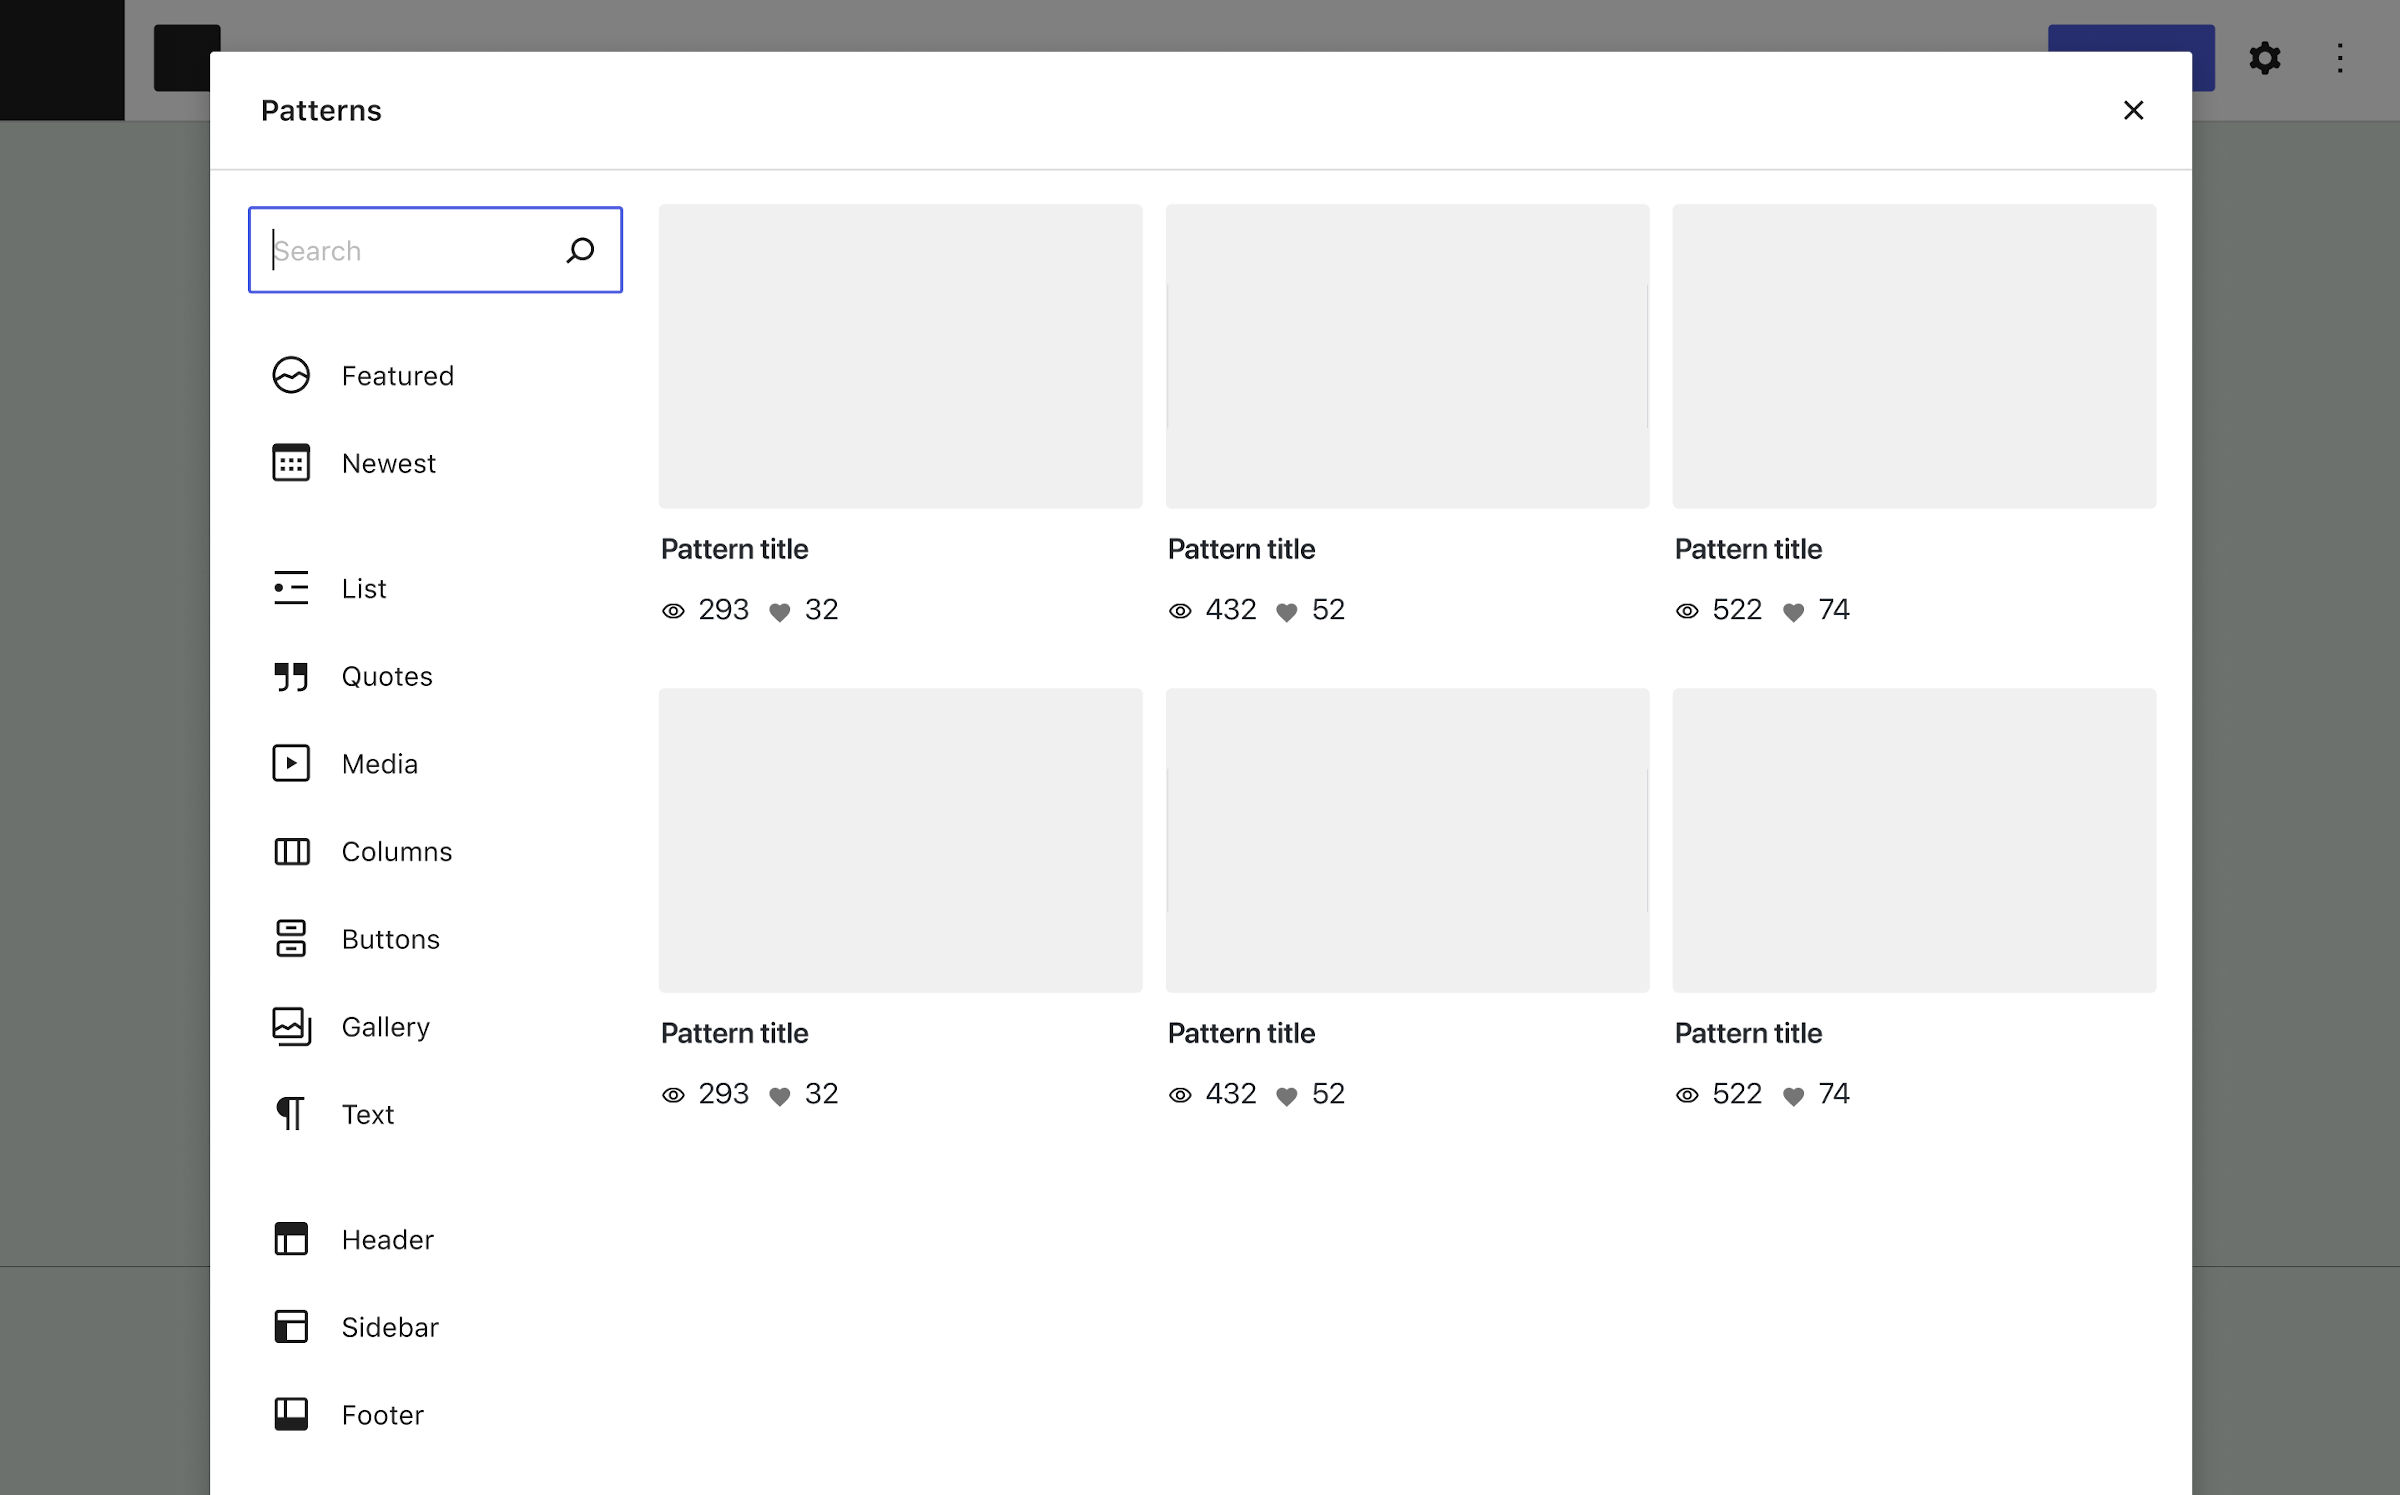 Popup overlay of a block patterns explorer with a list of categories on the left and tiled pattern previews on the right.